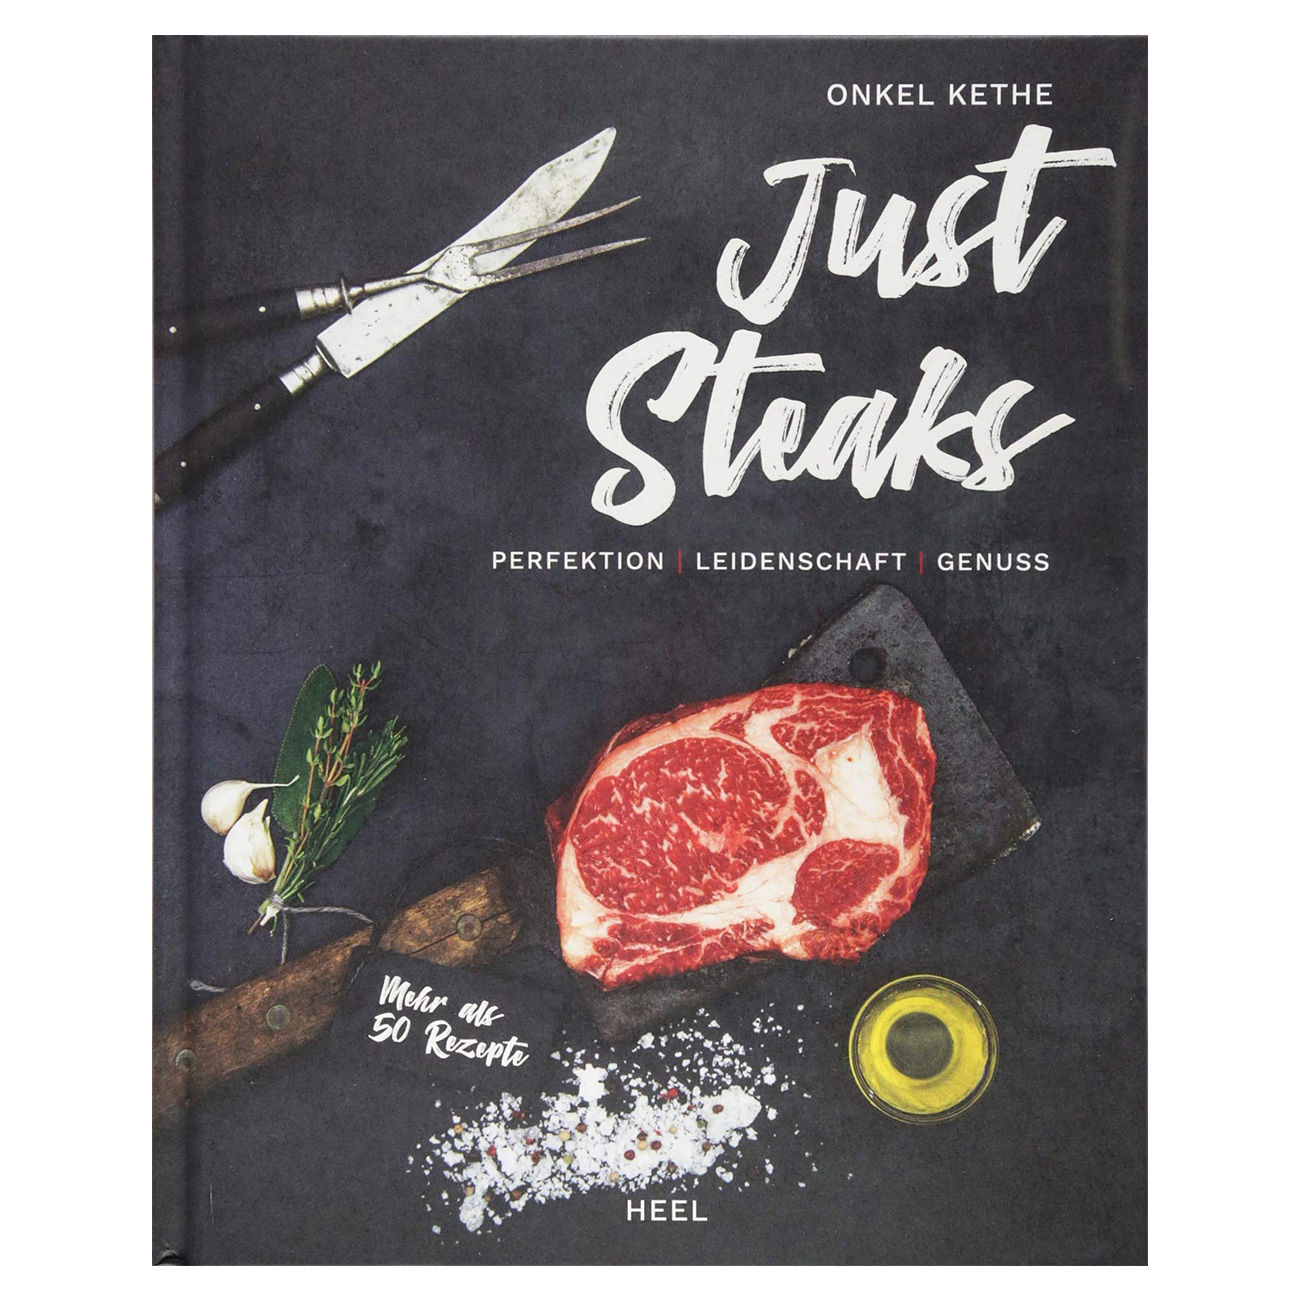 Just Steaks - Perfektion, Leidenschaft, Genuss 0